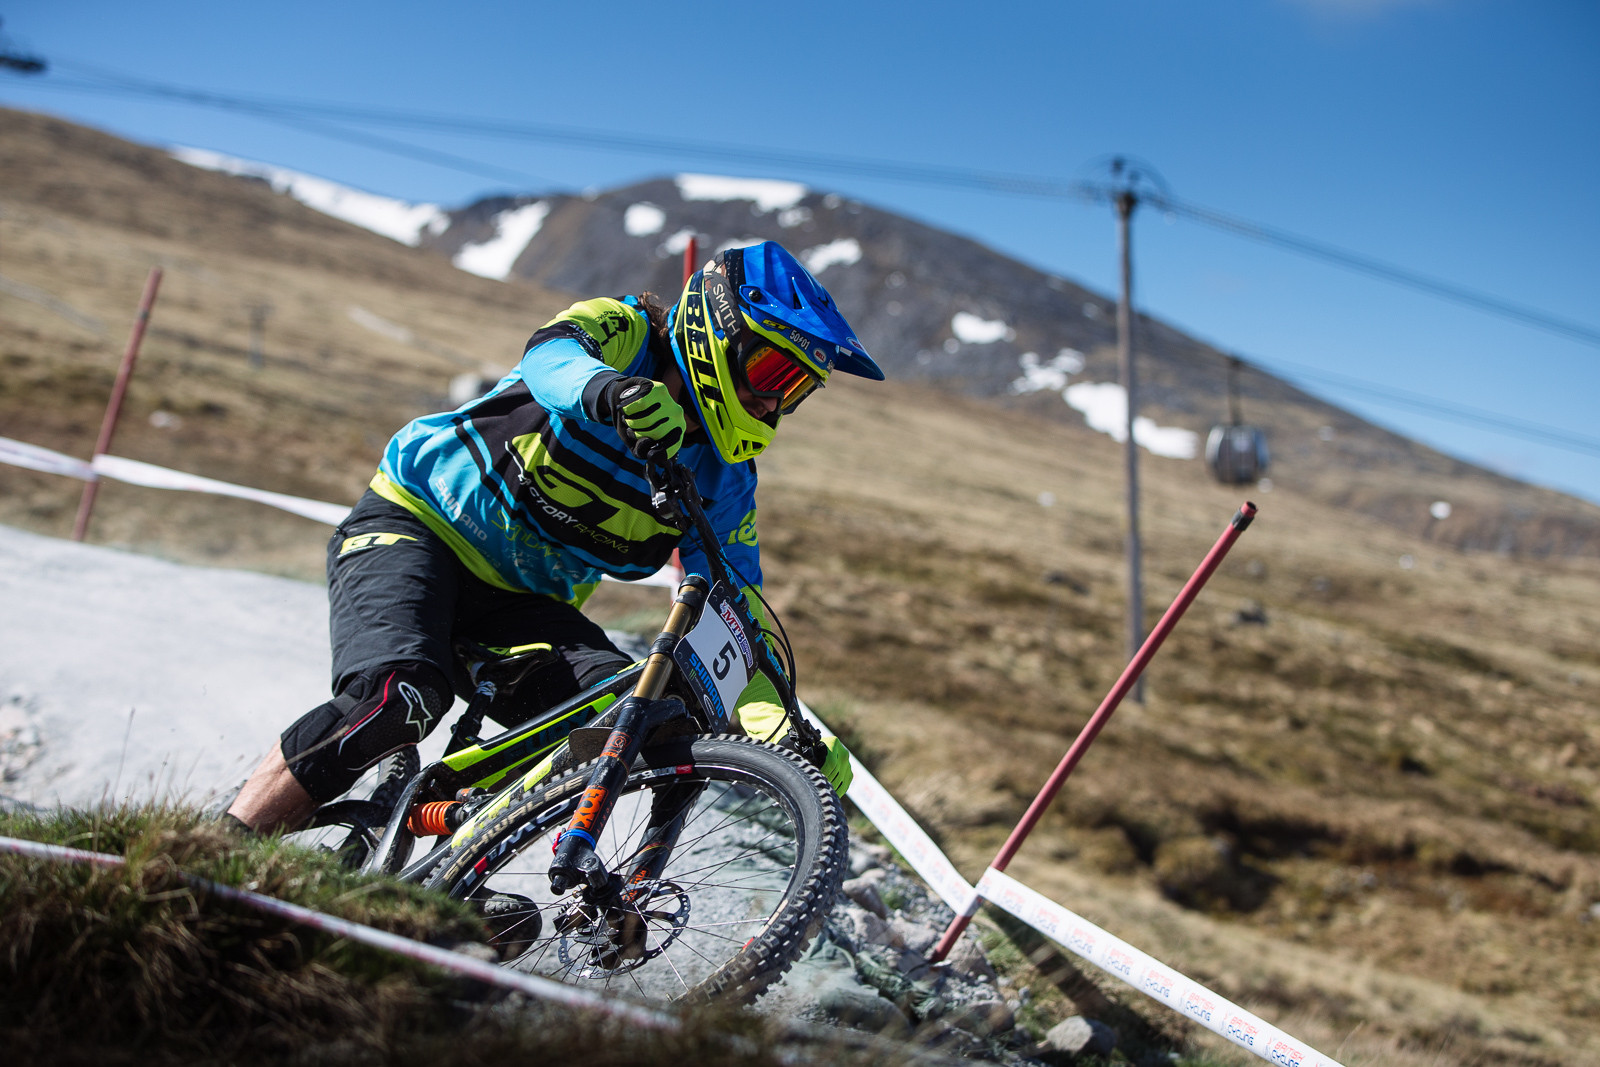 Sam Dale, Fort William BDS - Fort William DH Action from the British Downhill Series - Mountain Biking Pictures - Vital MTB